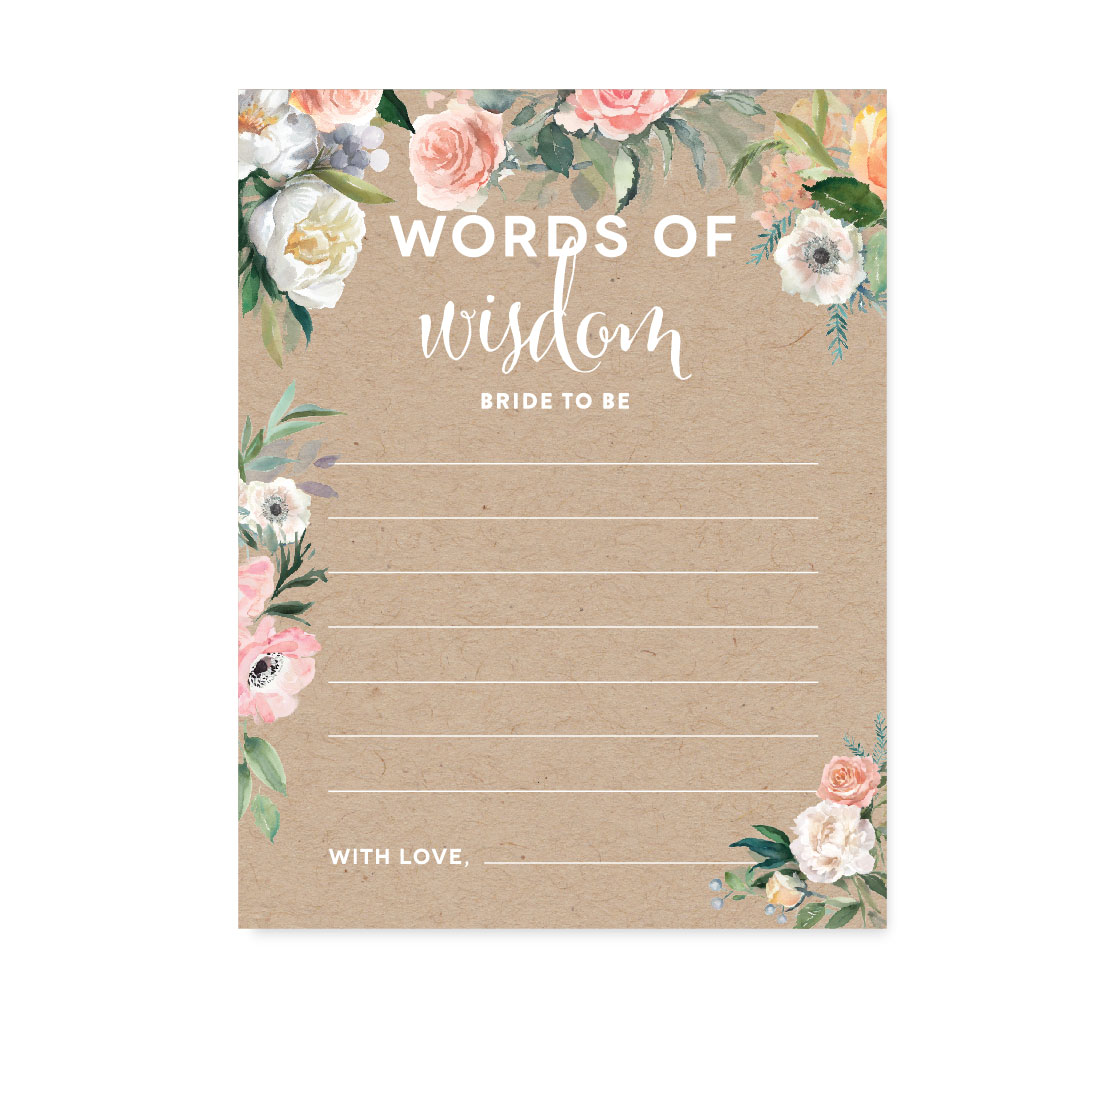 Peach Coral Kraft Brown Rustic Floral Garden Party Wedding, Blank Words of Wisdom Bridal Shower Cards, 20-Pack